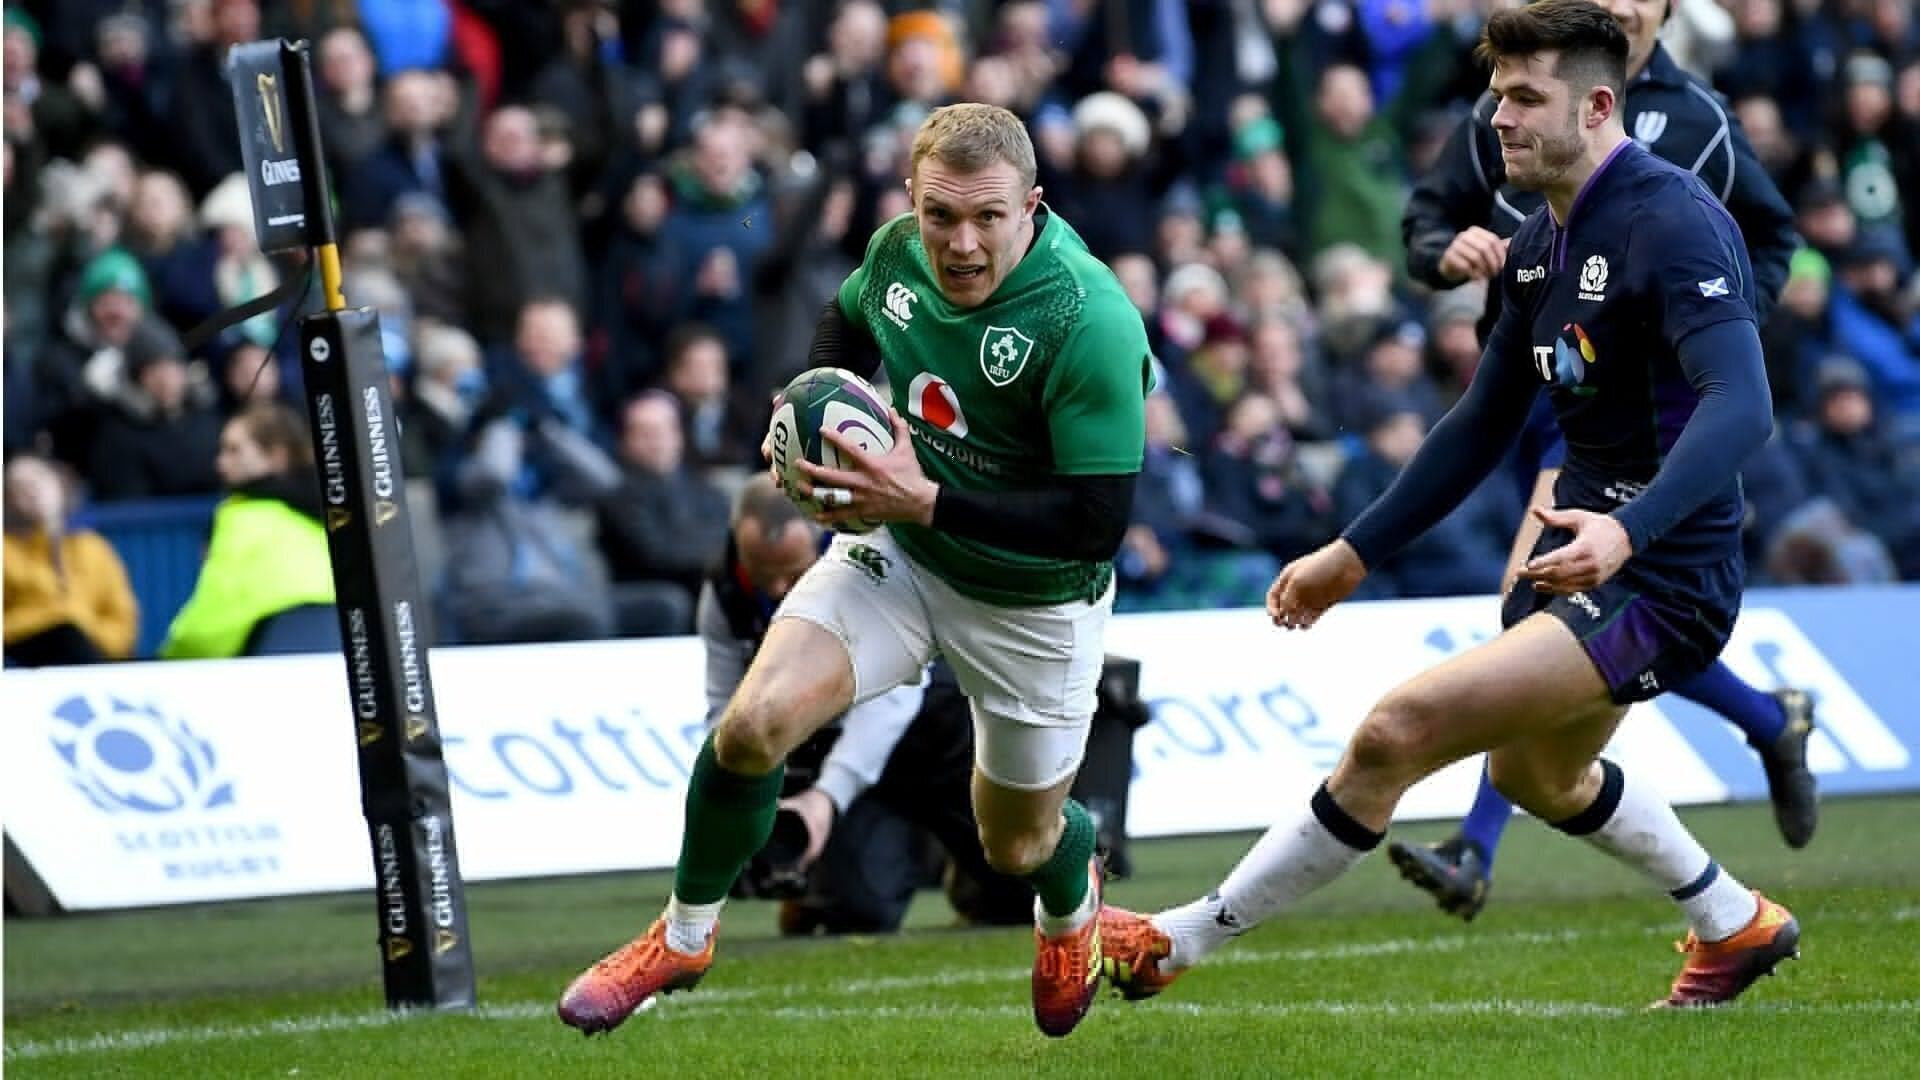 Scotland v Ireland - Guinness Six Nations